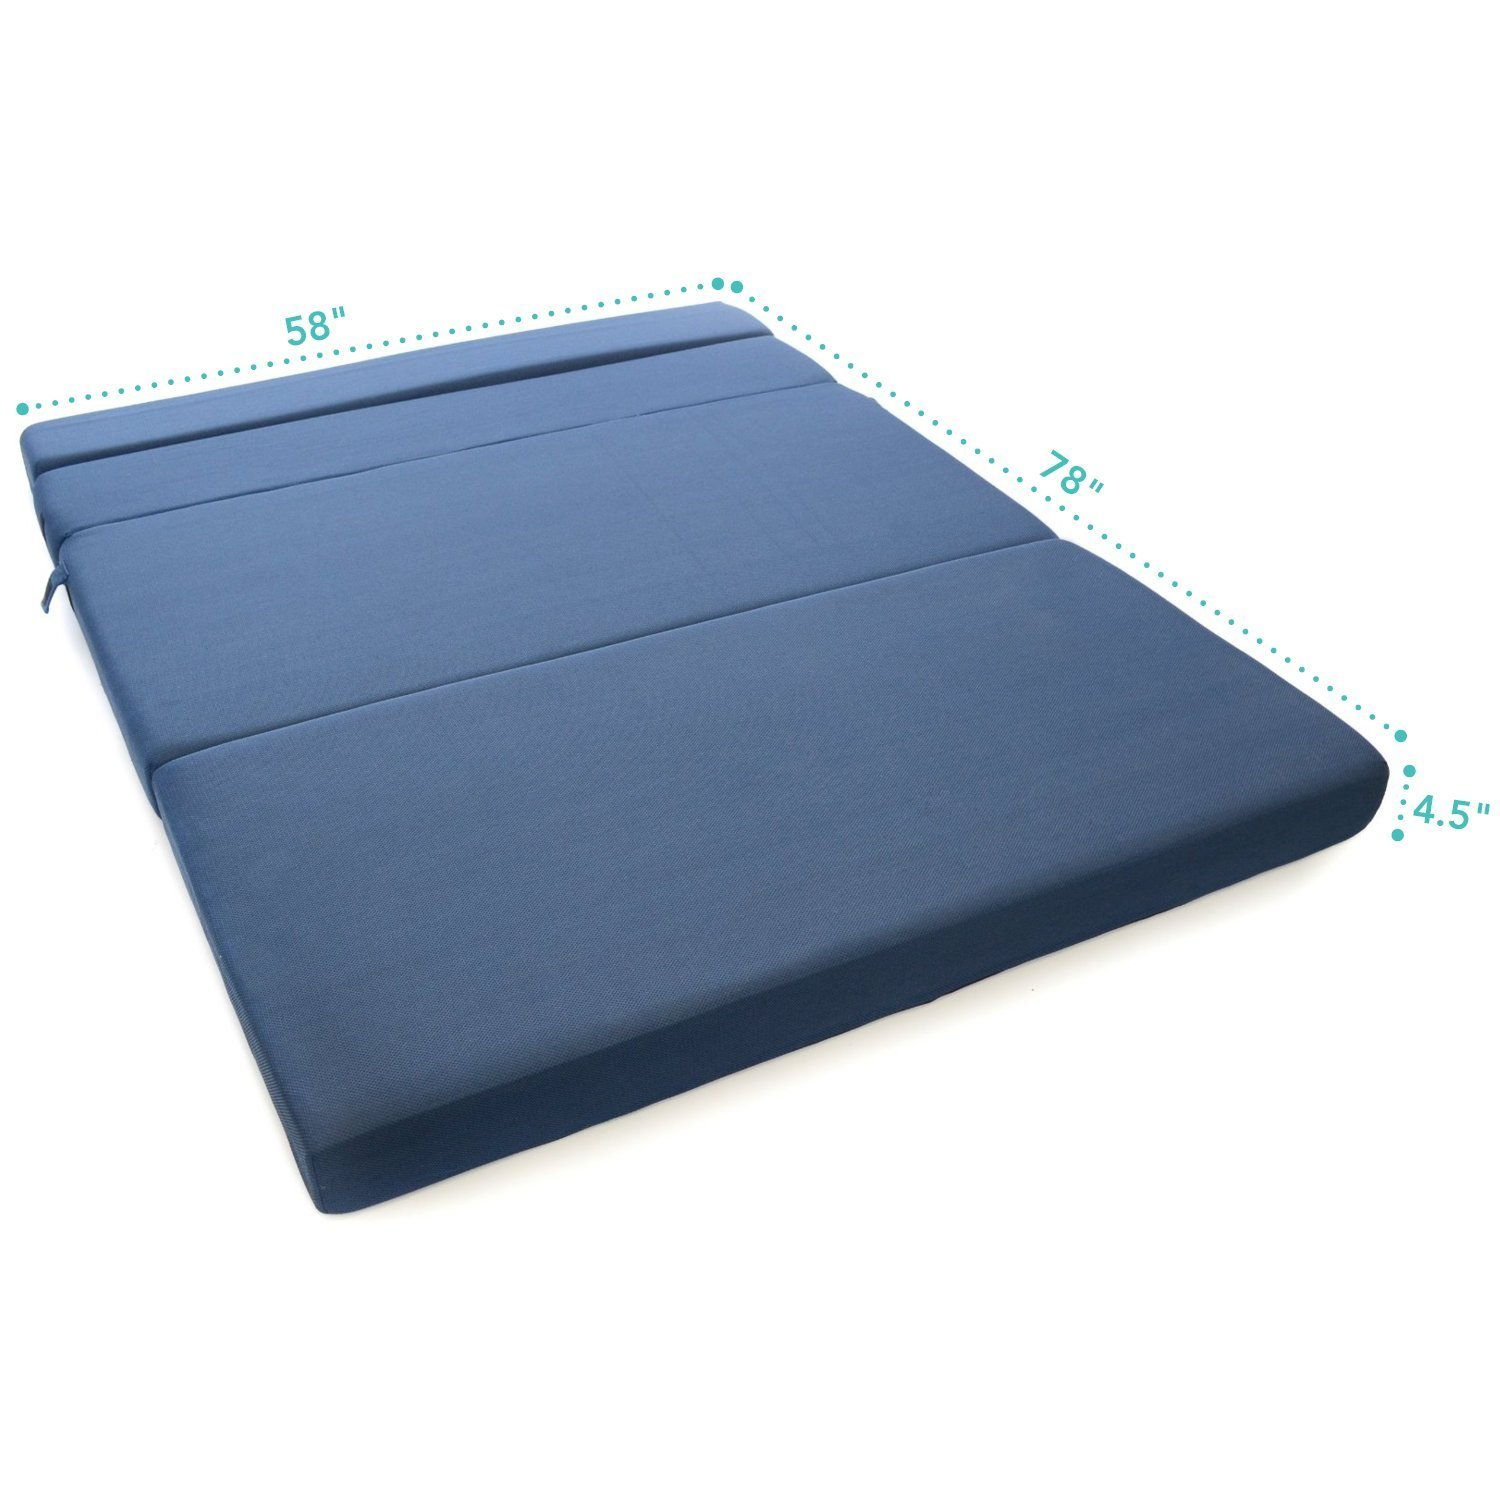 Tri Fold Foam Folding Mattress and Sofa Bed – Queen